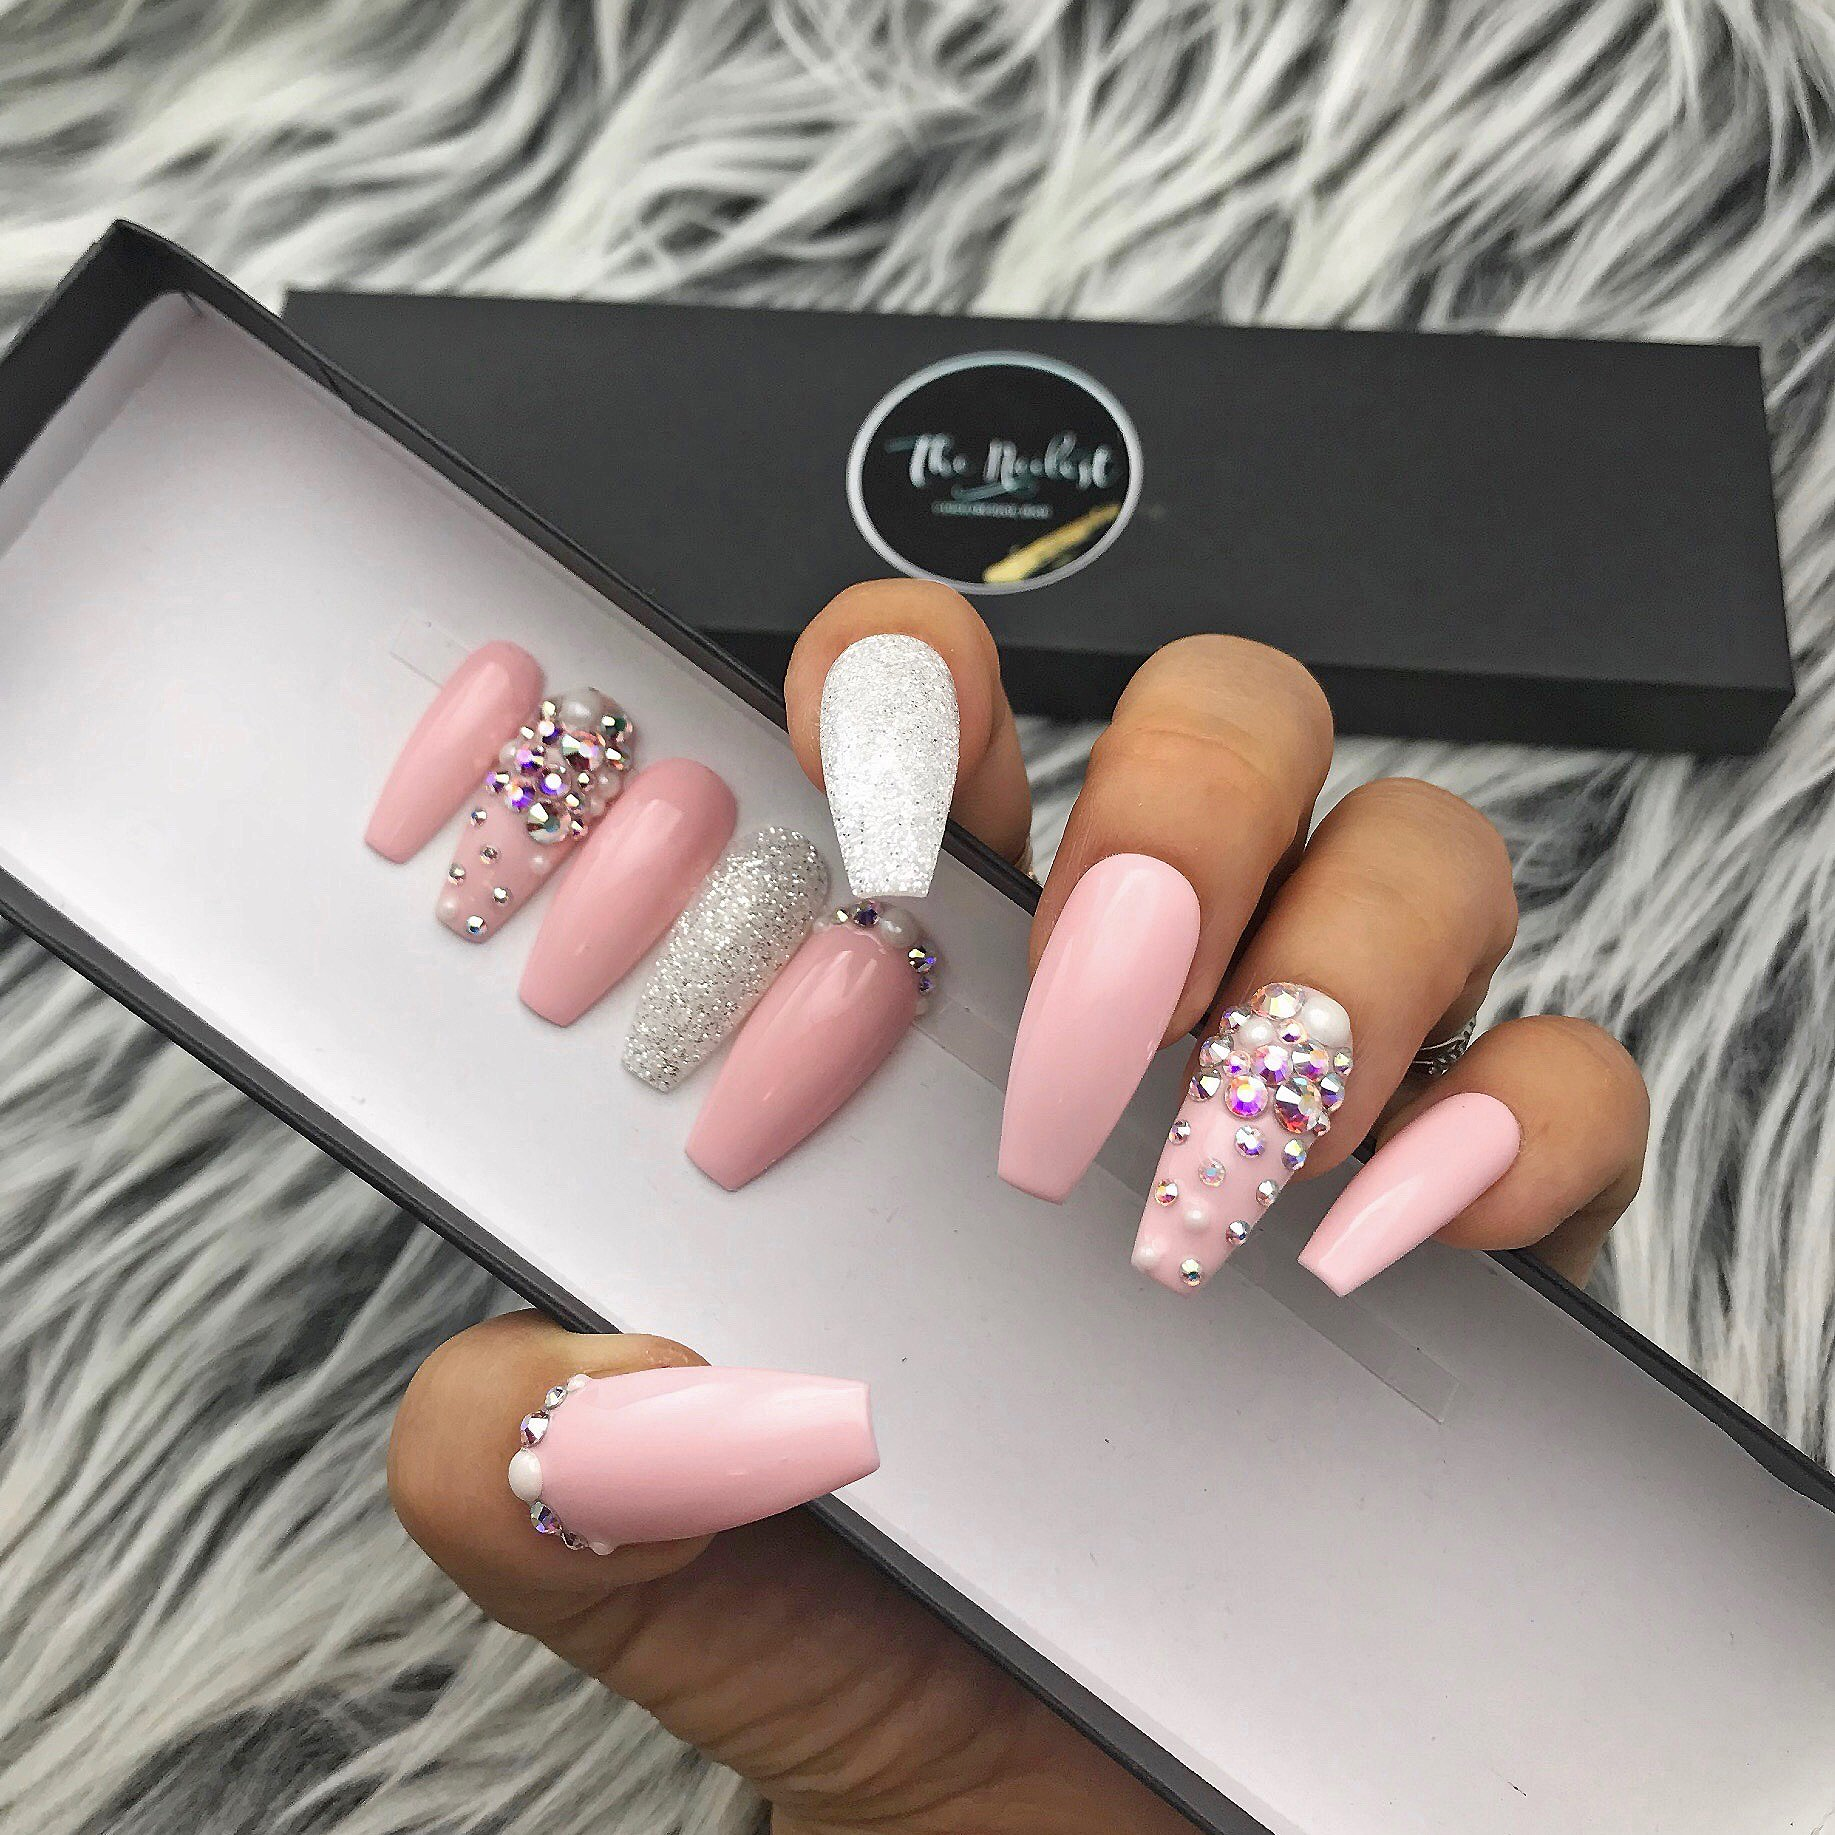 Handmade Glossy Pinklady Pearl Glitter Bling Crystal Ombre Glue On Nails Pink Nails Coffin Nails Matte